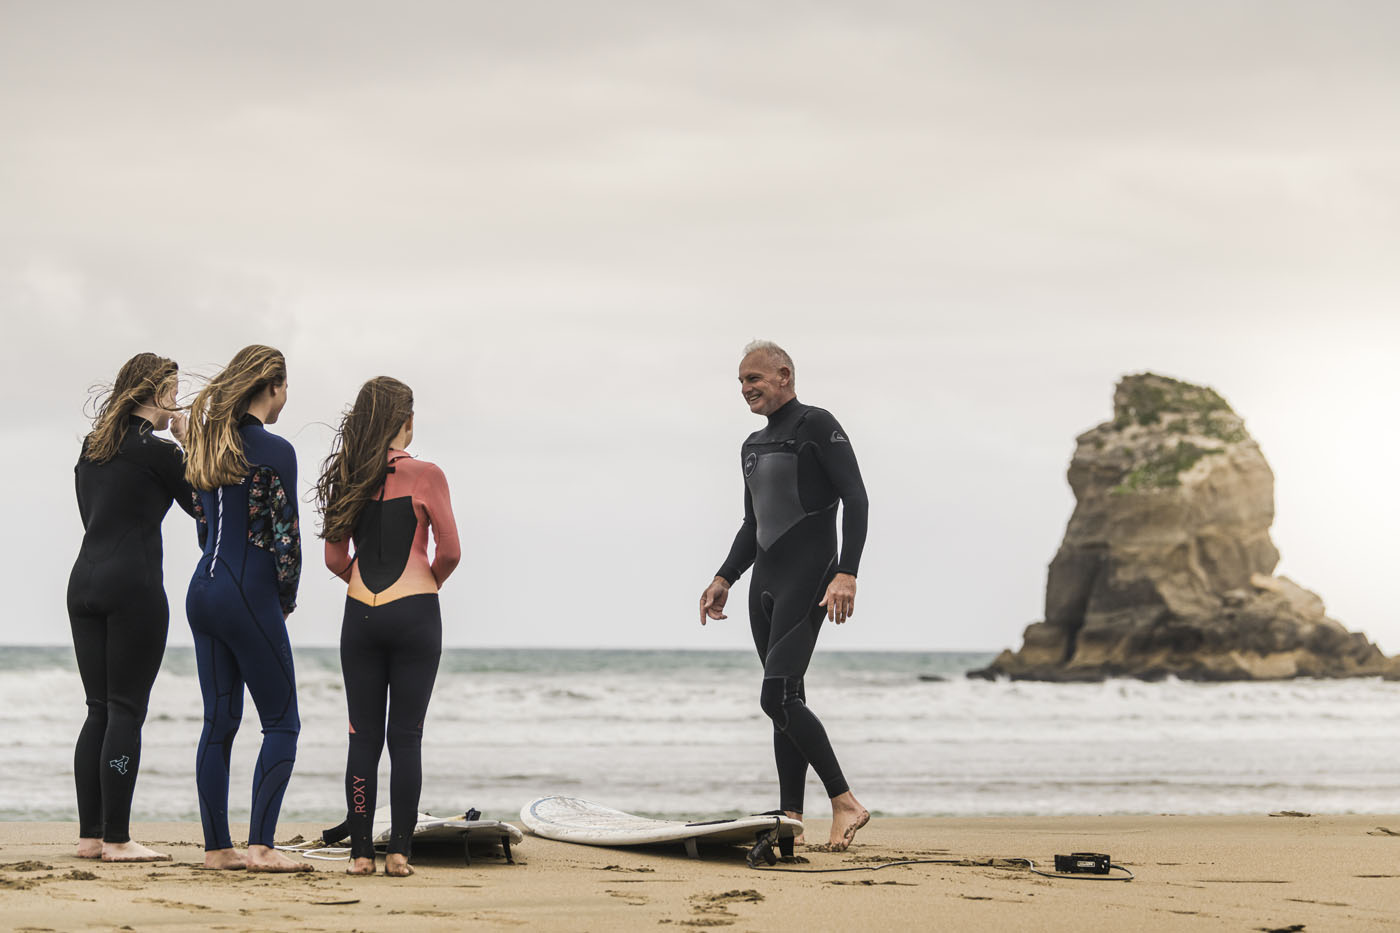 Surfing at Castlepoint